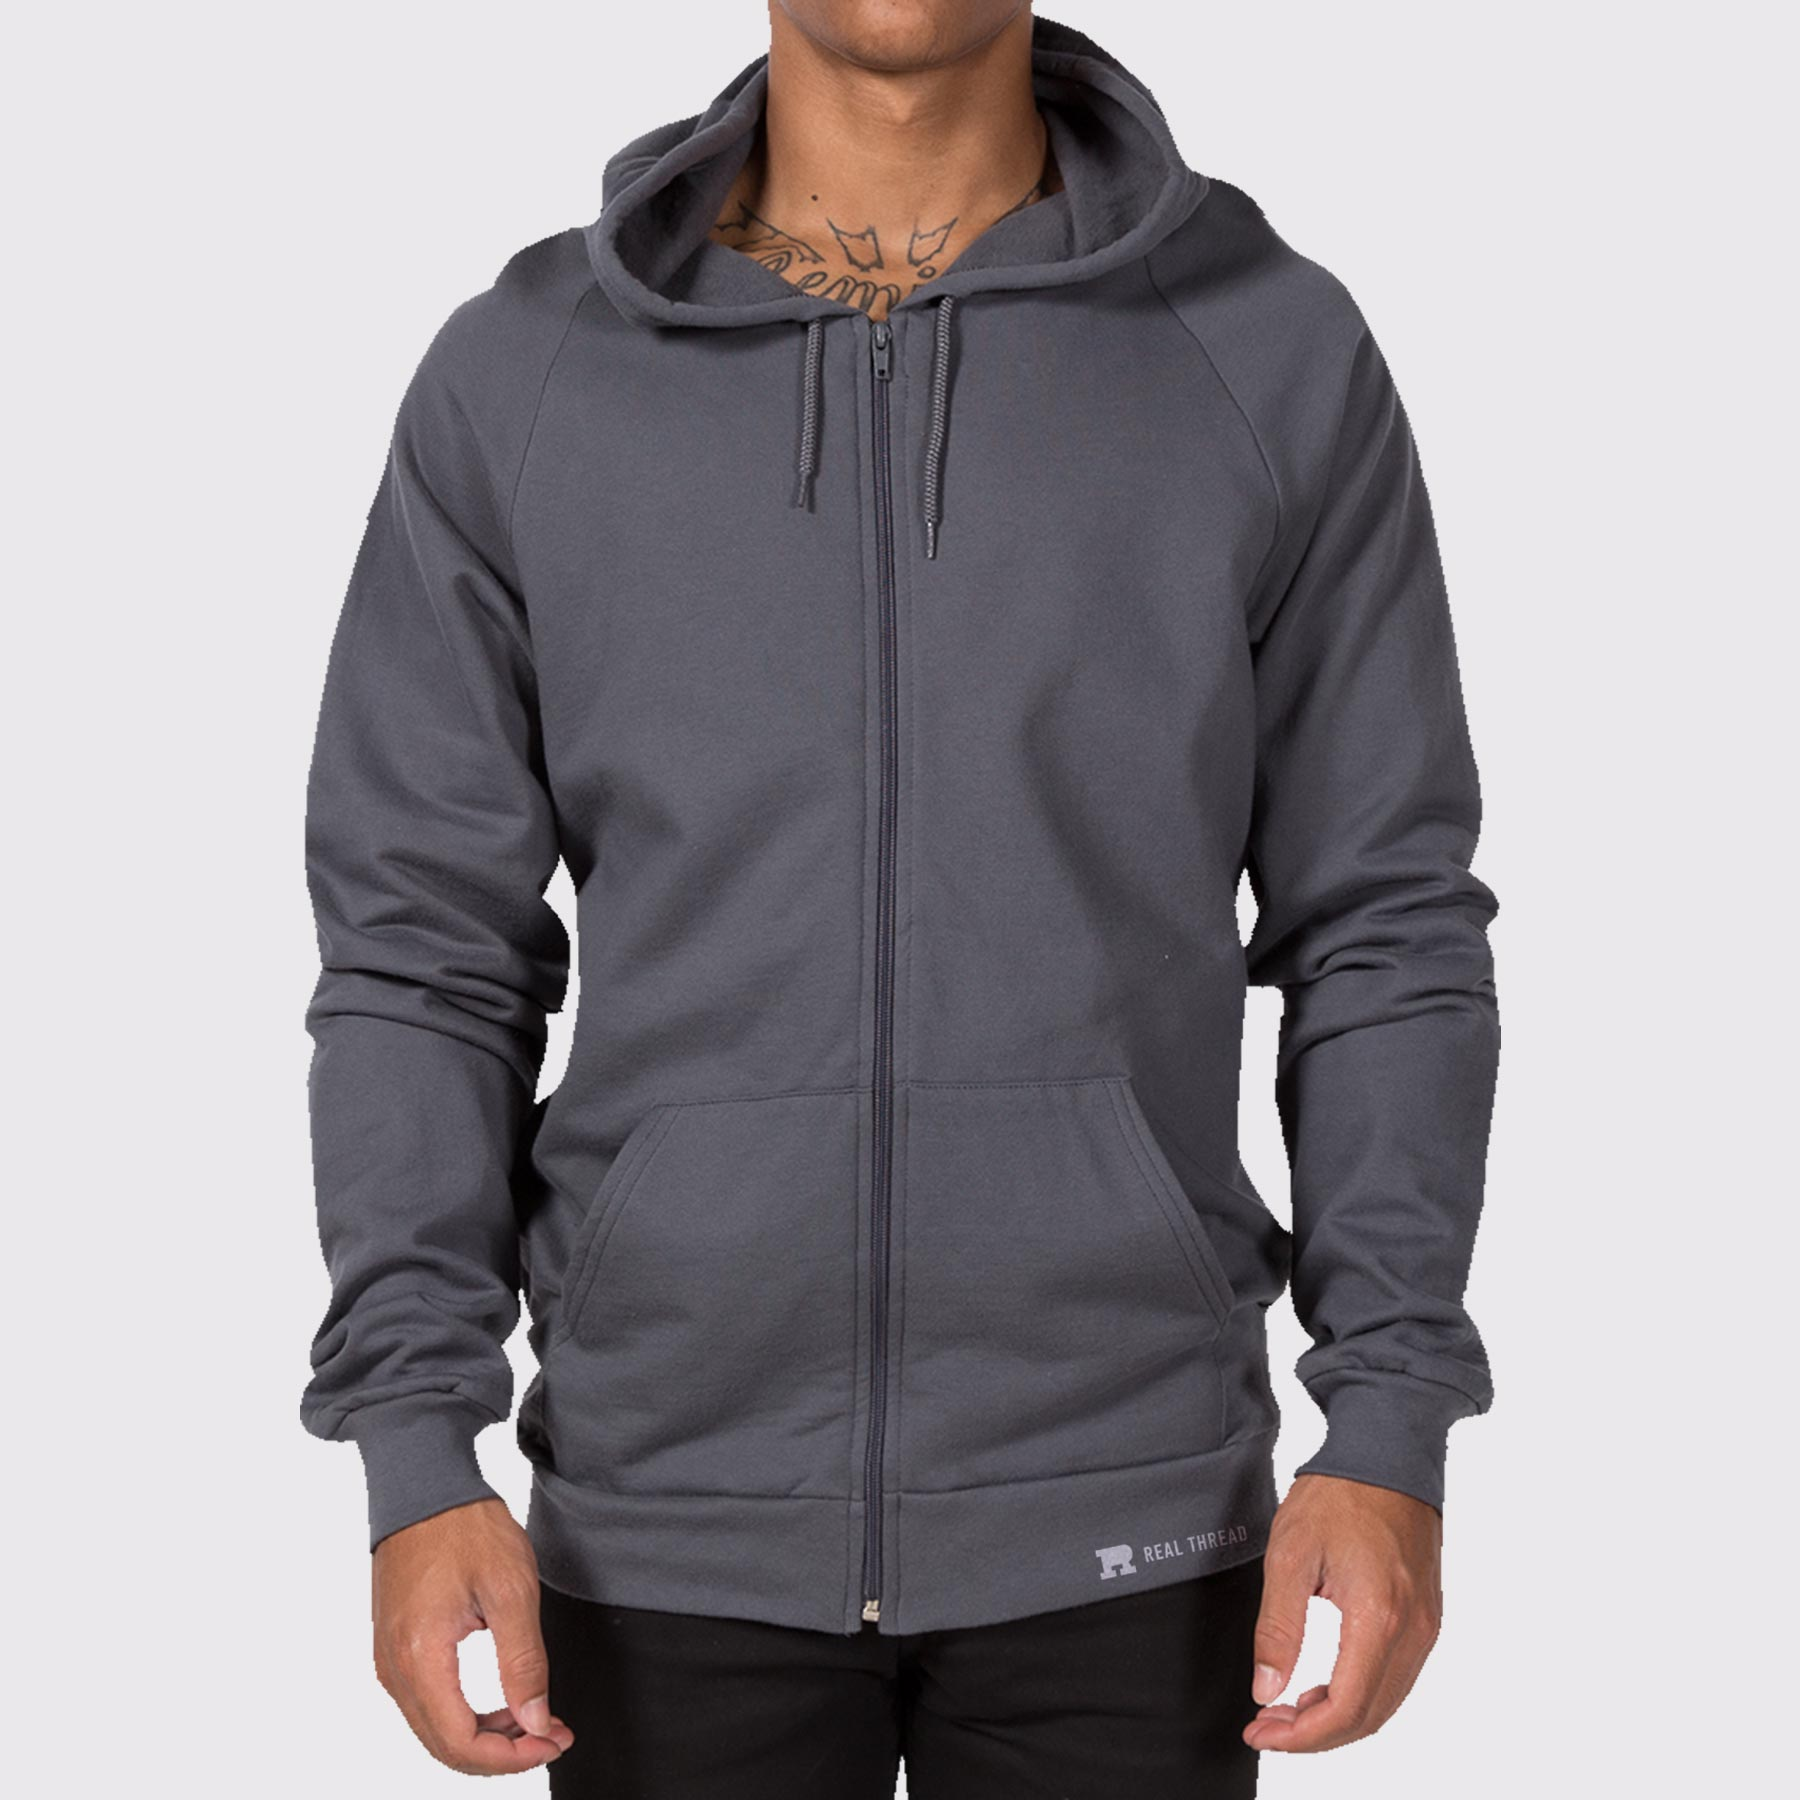 American Apparel 5497 Hoodie Template Modeled